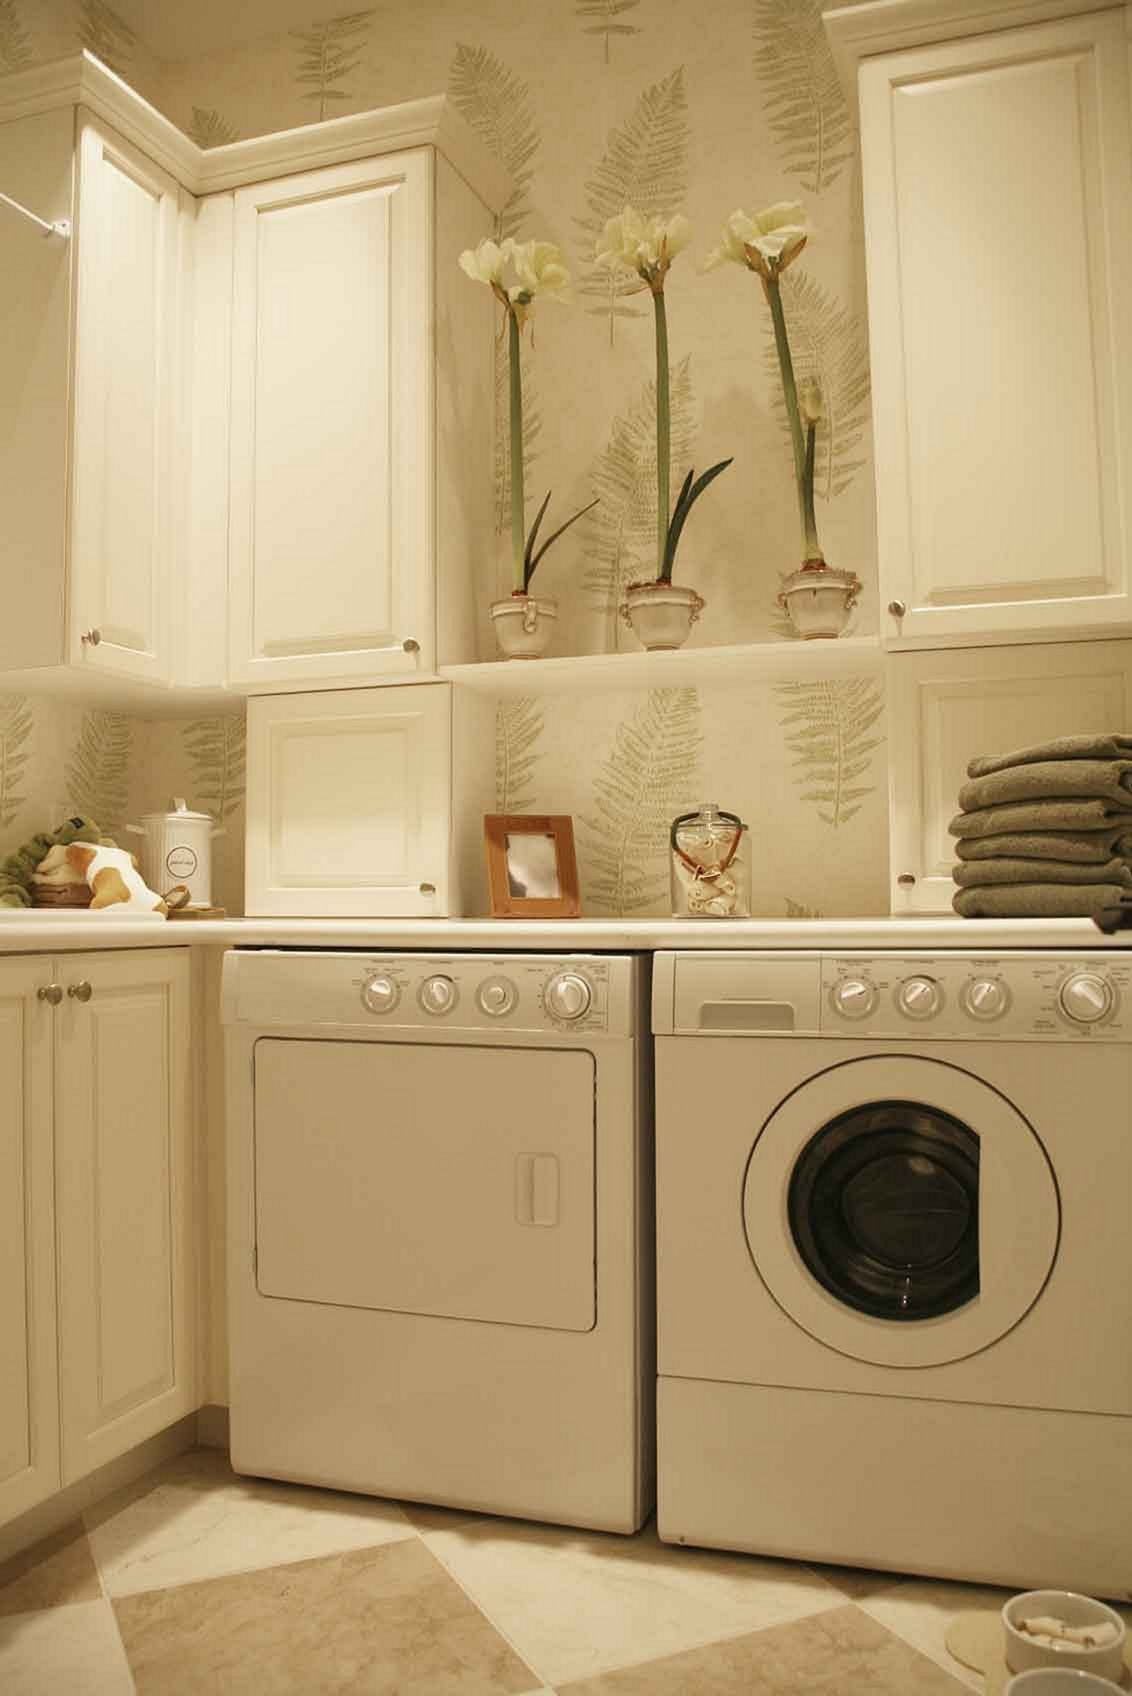 30+ Small Laundry Room Decorating Ideas To Inspire You | Small ...